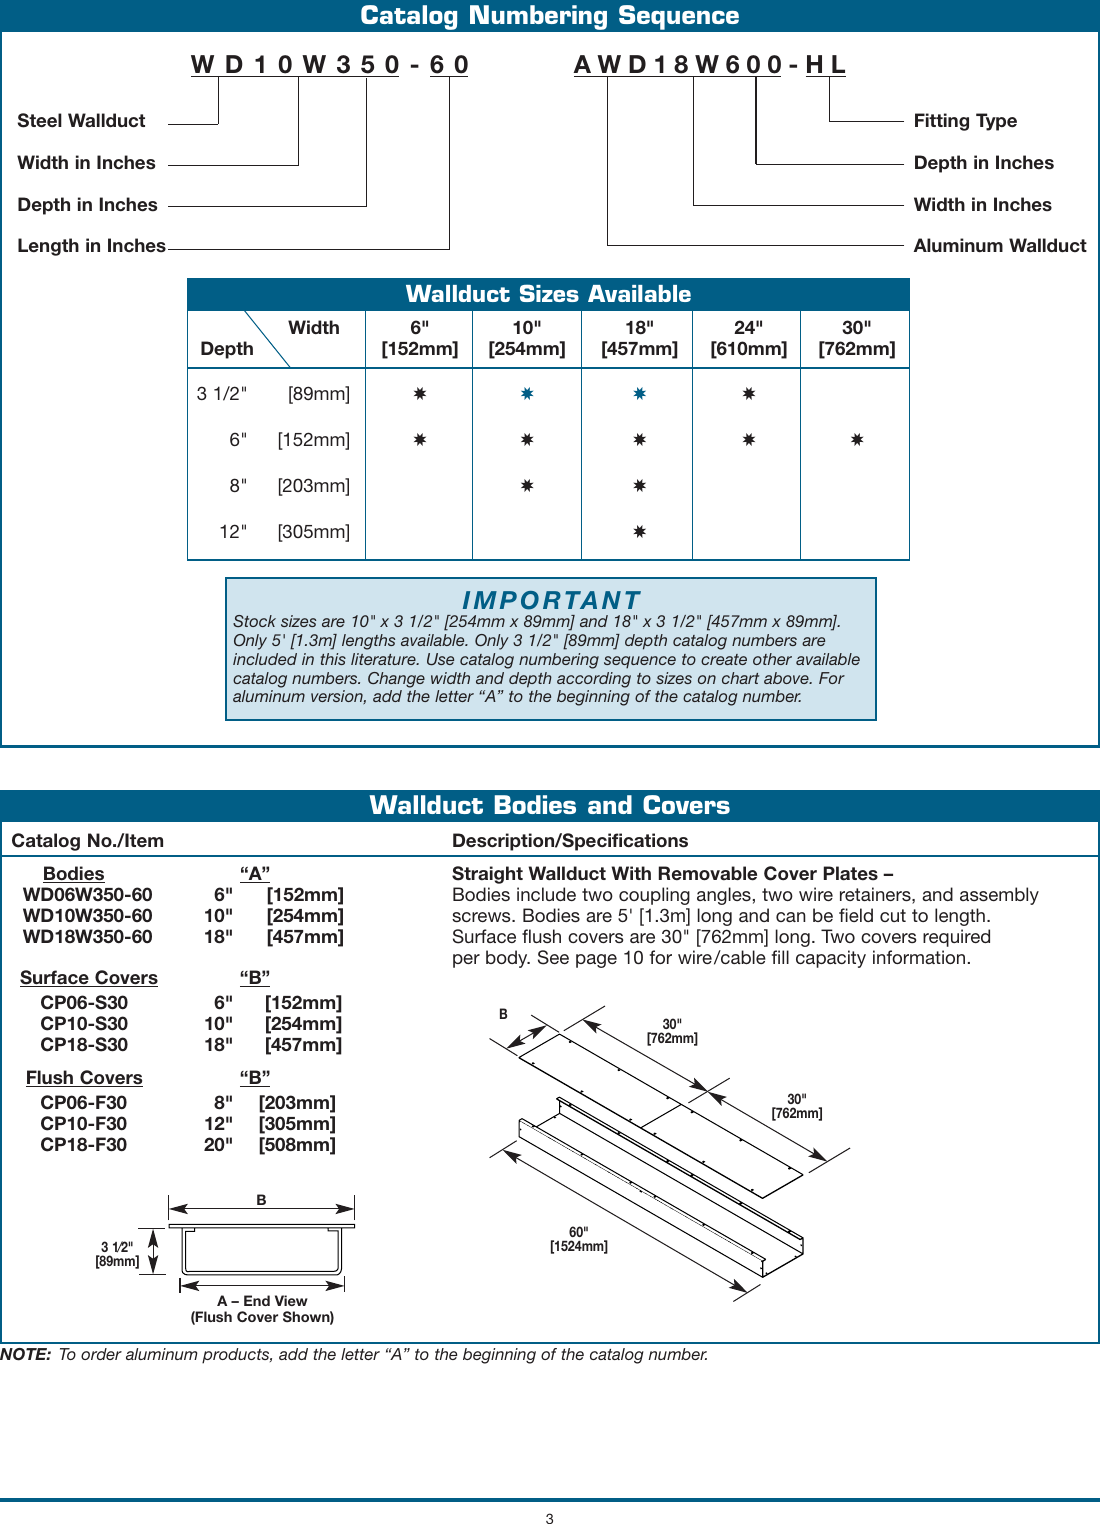 Steel & Aluminum Wallduct Product Specifications 496155 Catalog